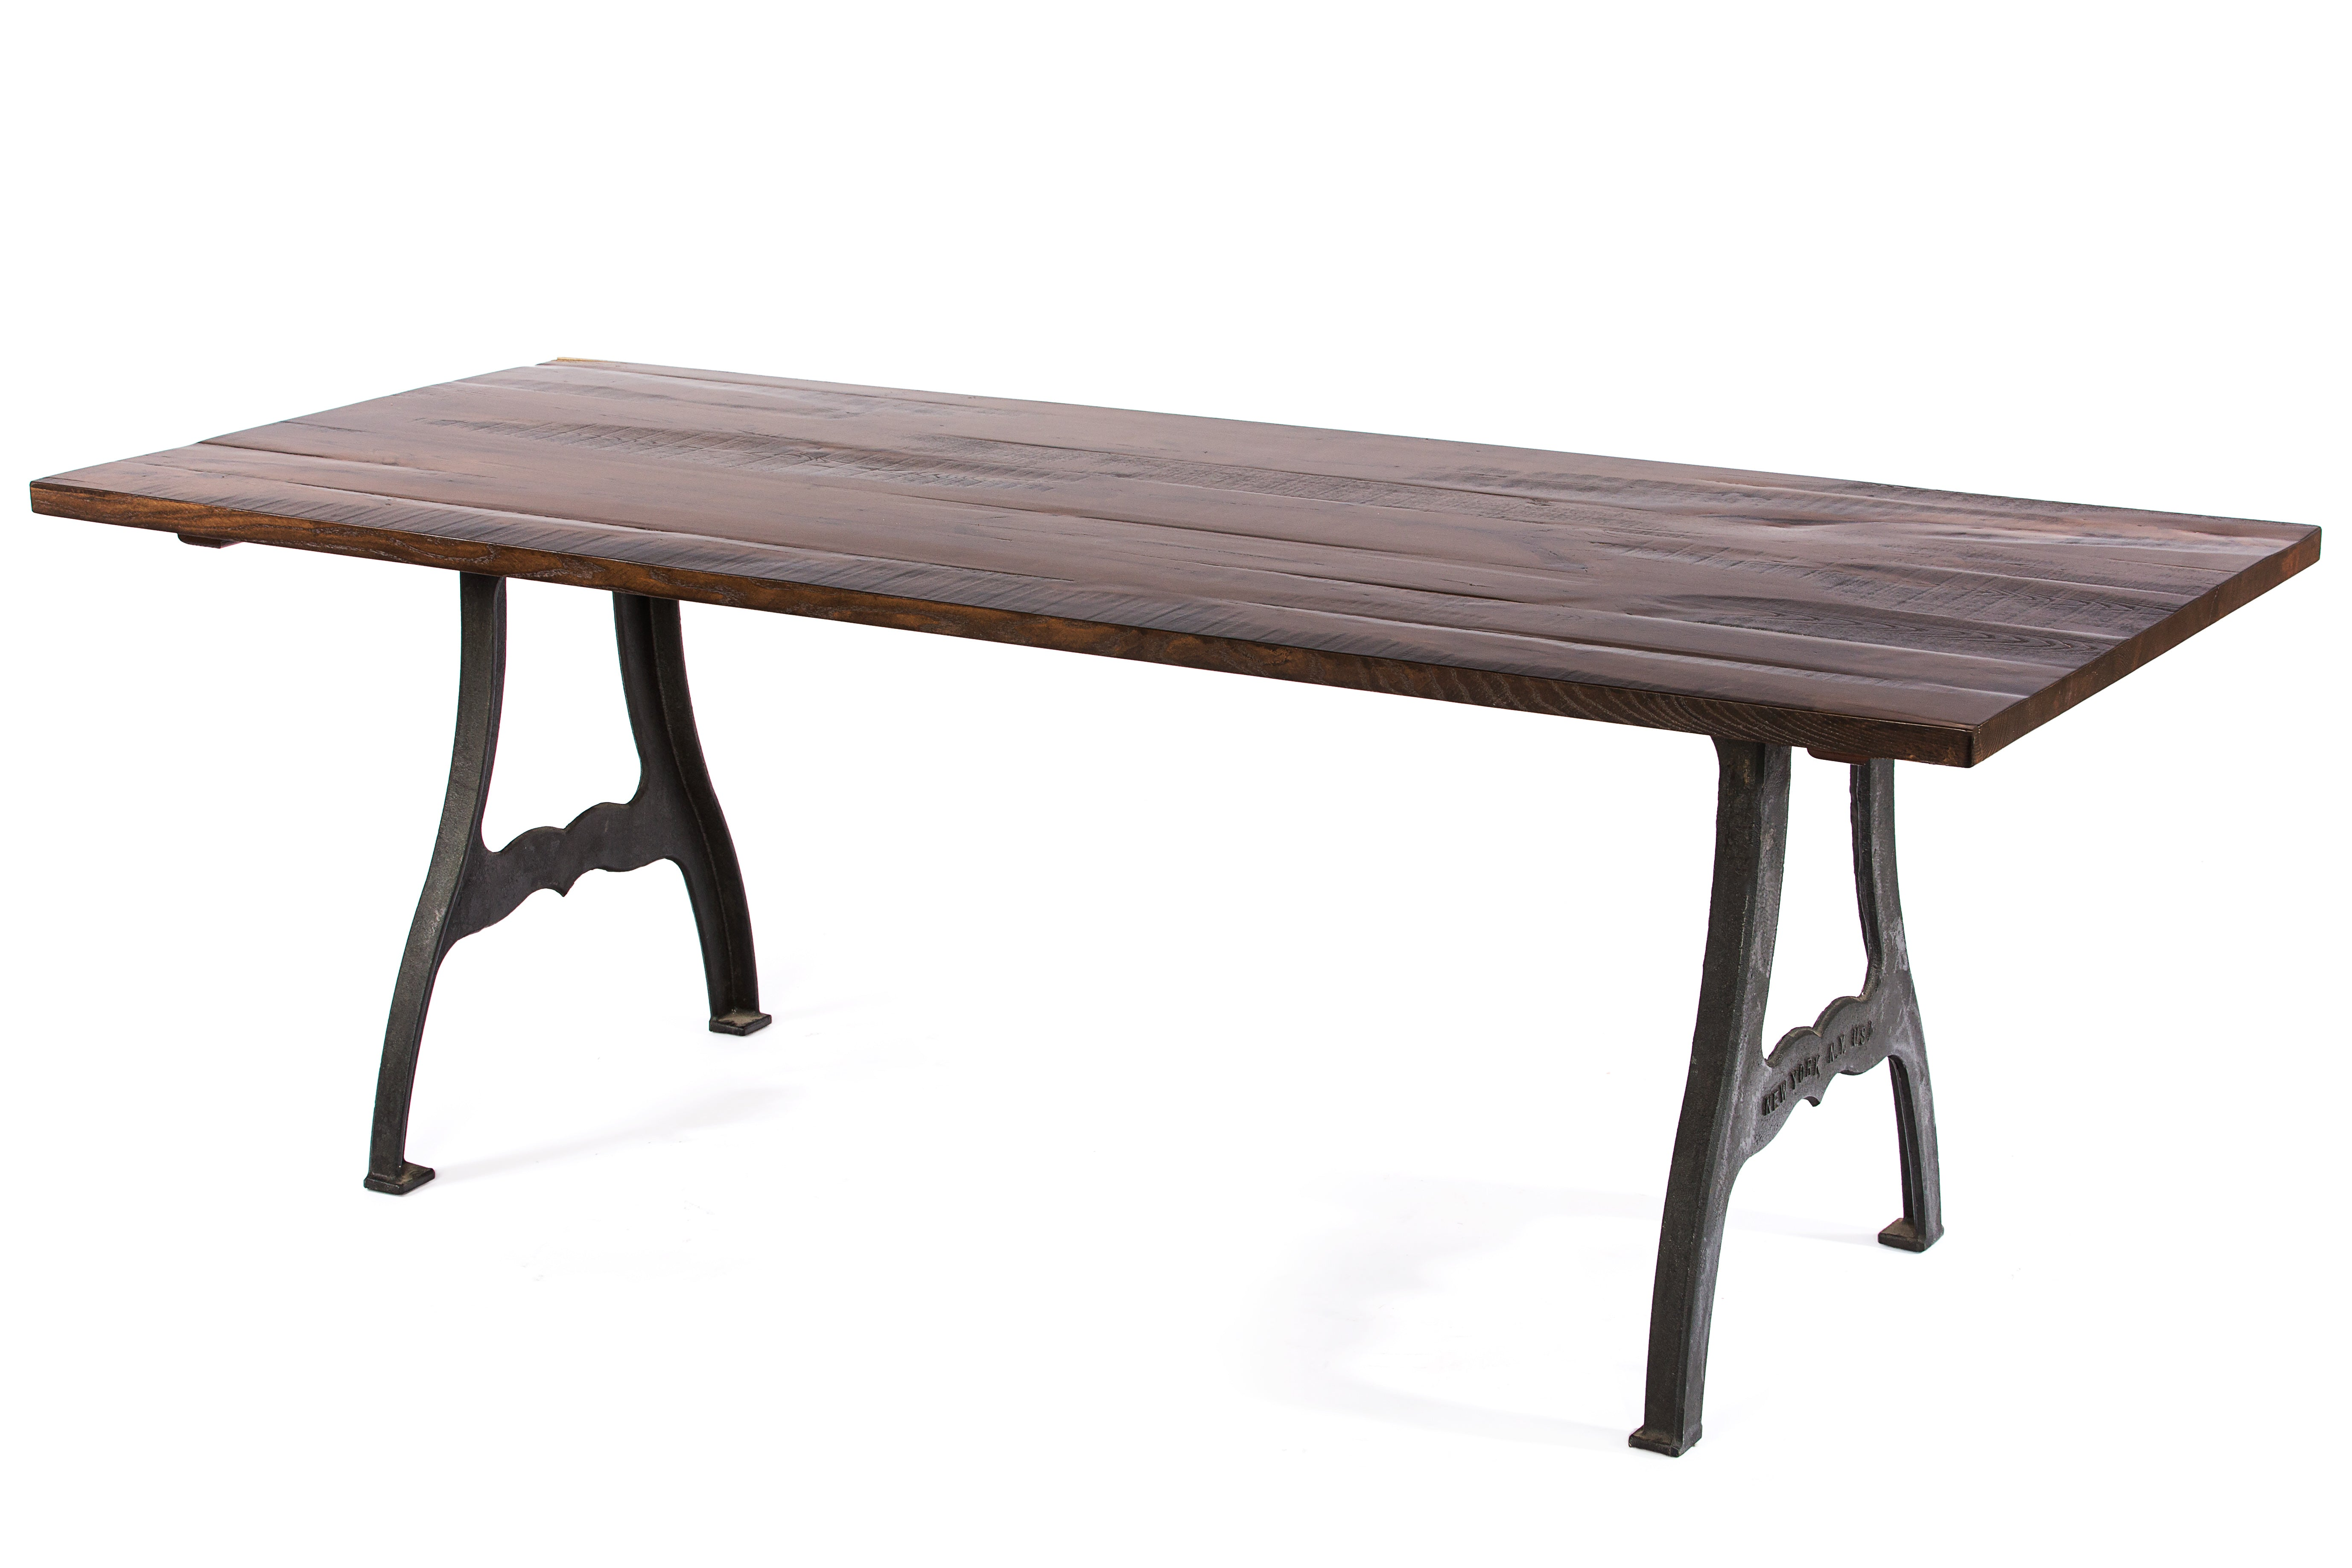 Wood Tables | Williamsburg Table | Natural Ash | Black | CUSTOM SIZE L 108 W 30 H 30 | 2""